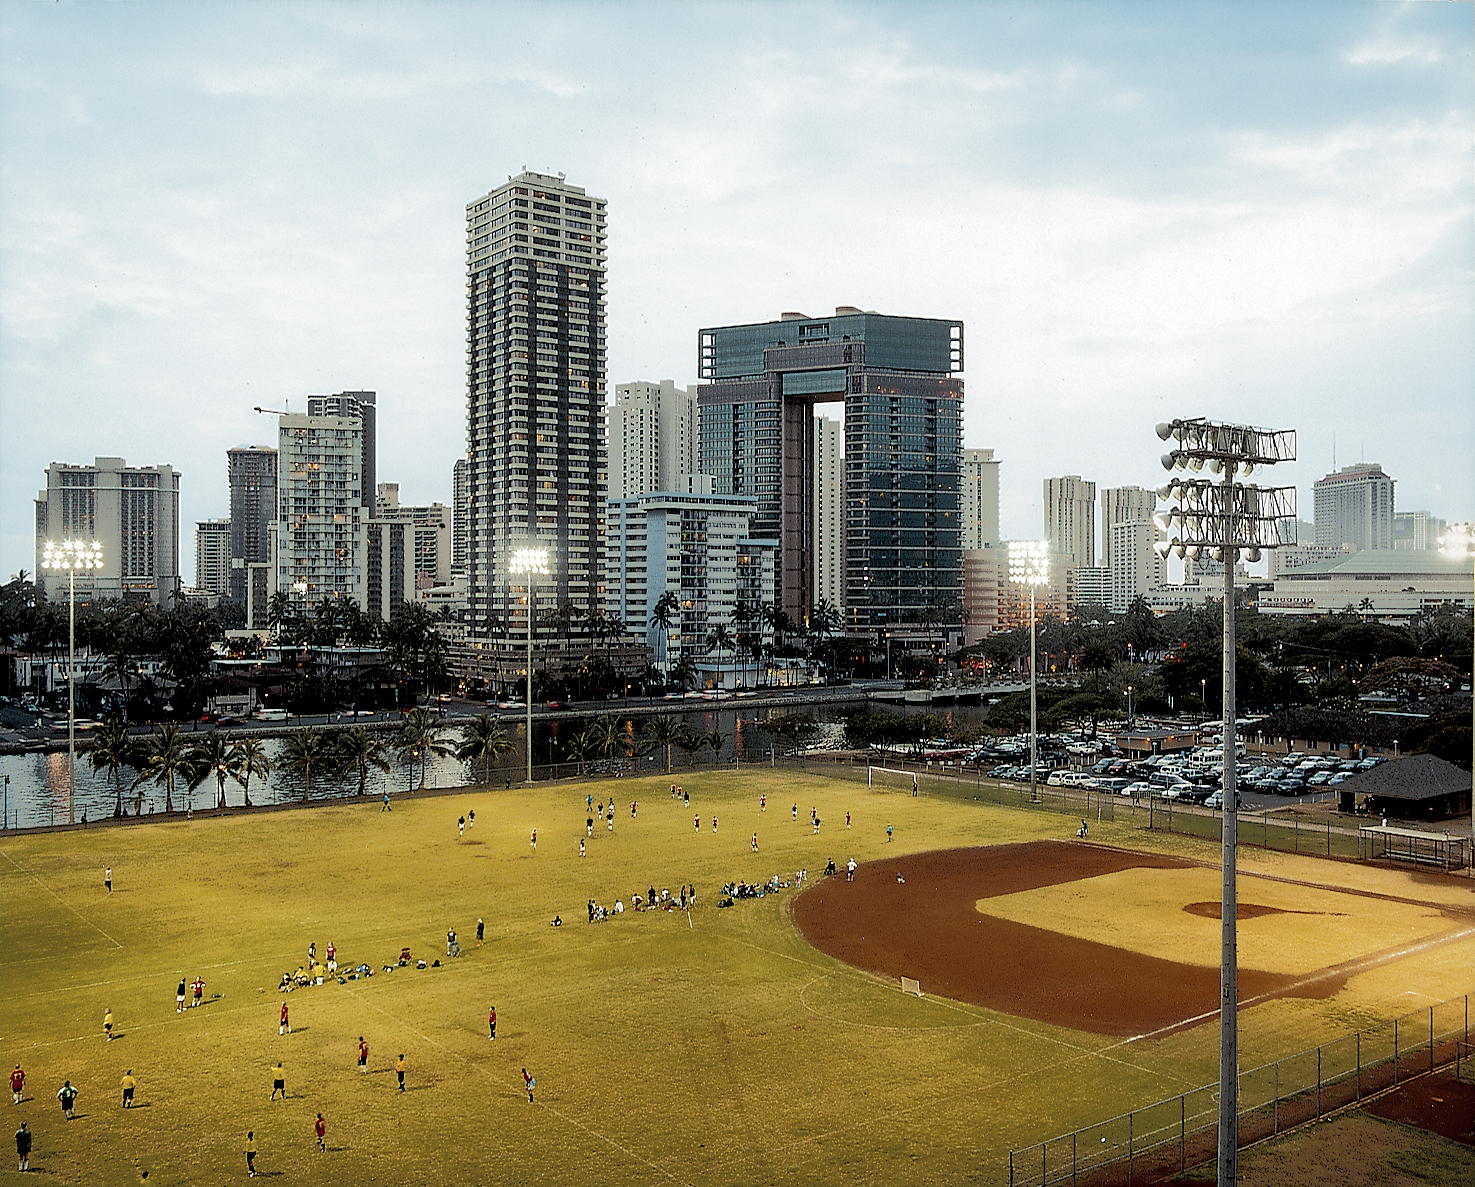 In the shadow of Waikiki's high-rises, a twilight soccer game unfolds at the Ala Wai Neighborhood Park. The now-polluted Ala Wai Canal was created in the 1920s to drain the swampland that would become Waikiki.